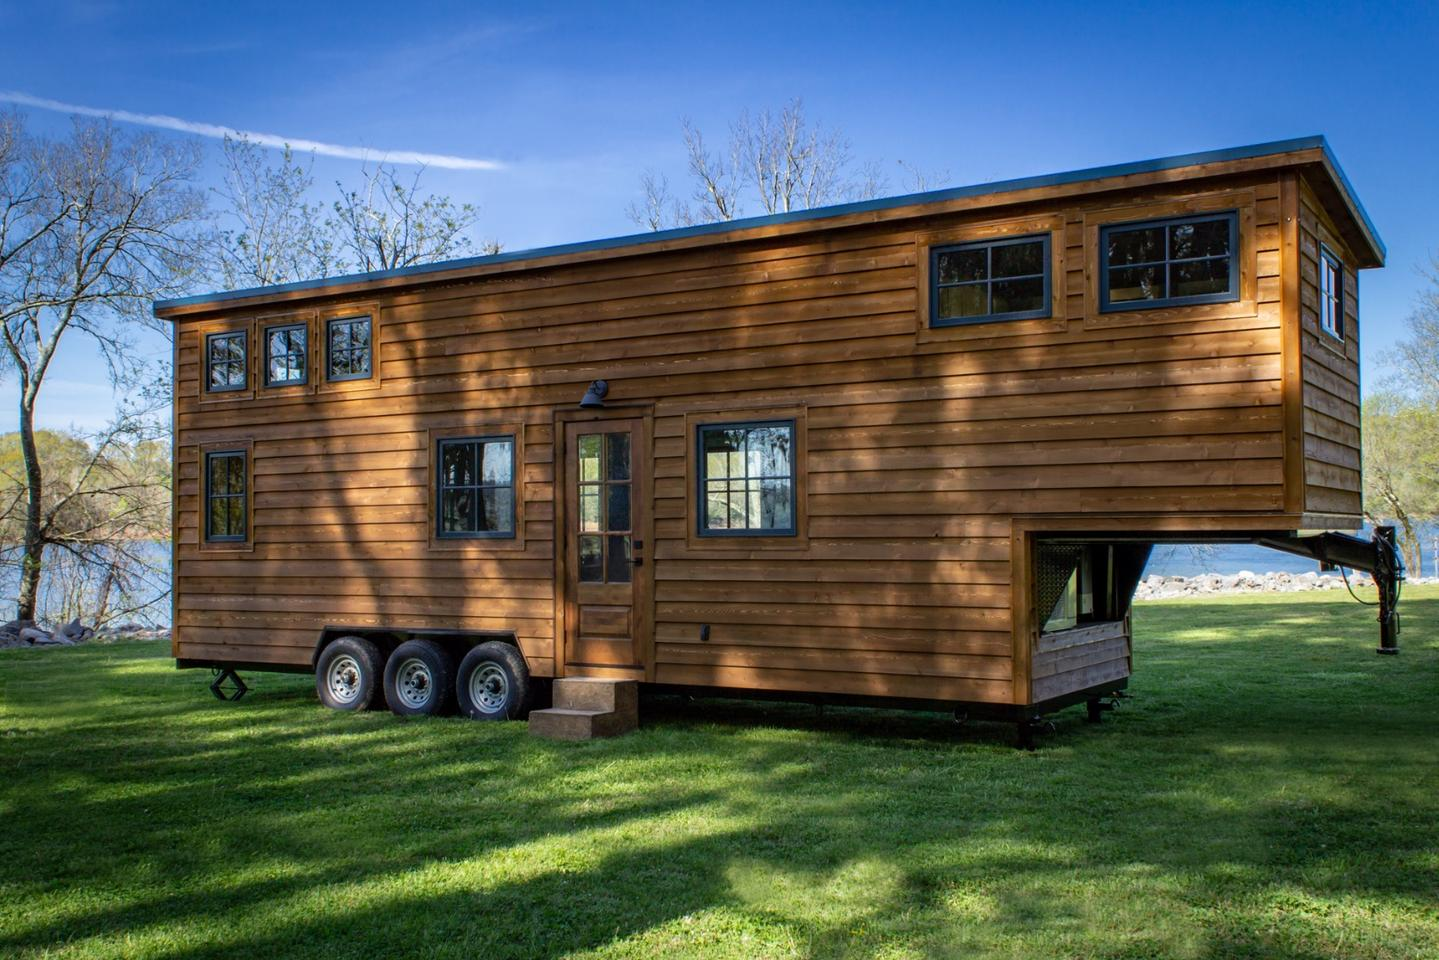 Timbercraft Tiny Homes, the firm behind the Retreat and Ridgewood models, recently completed a new tiny house called the Cedar House